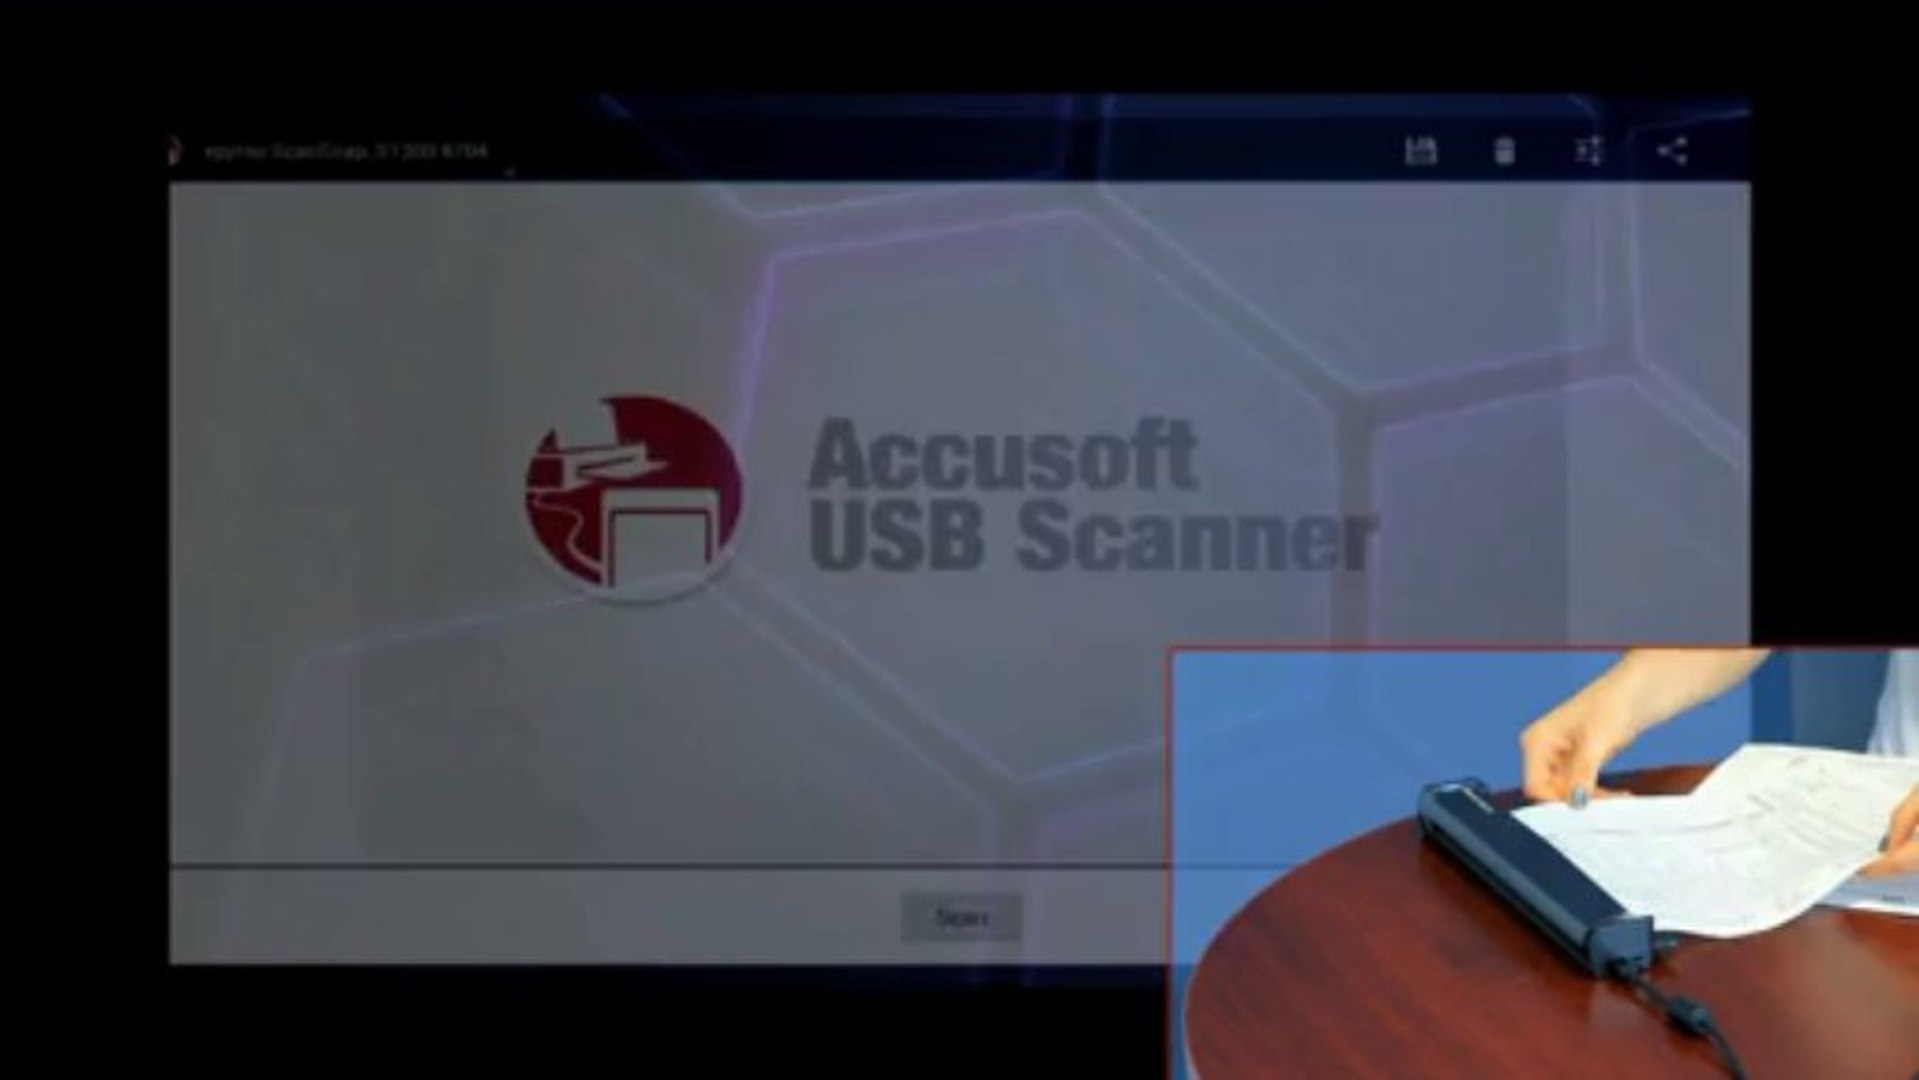 Accusoft USB Scanner App for Android Demonstration